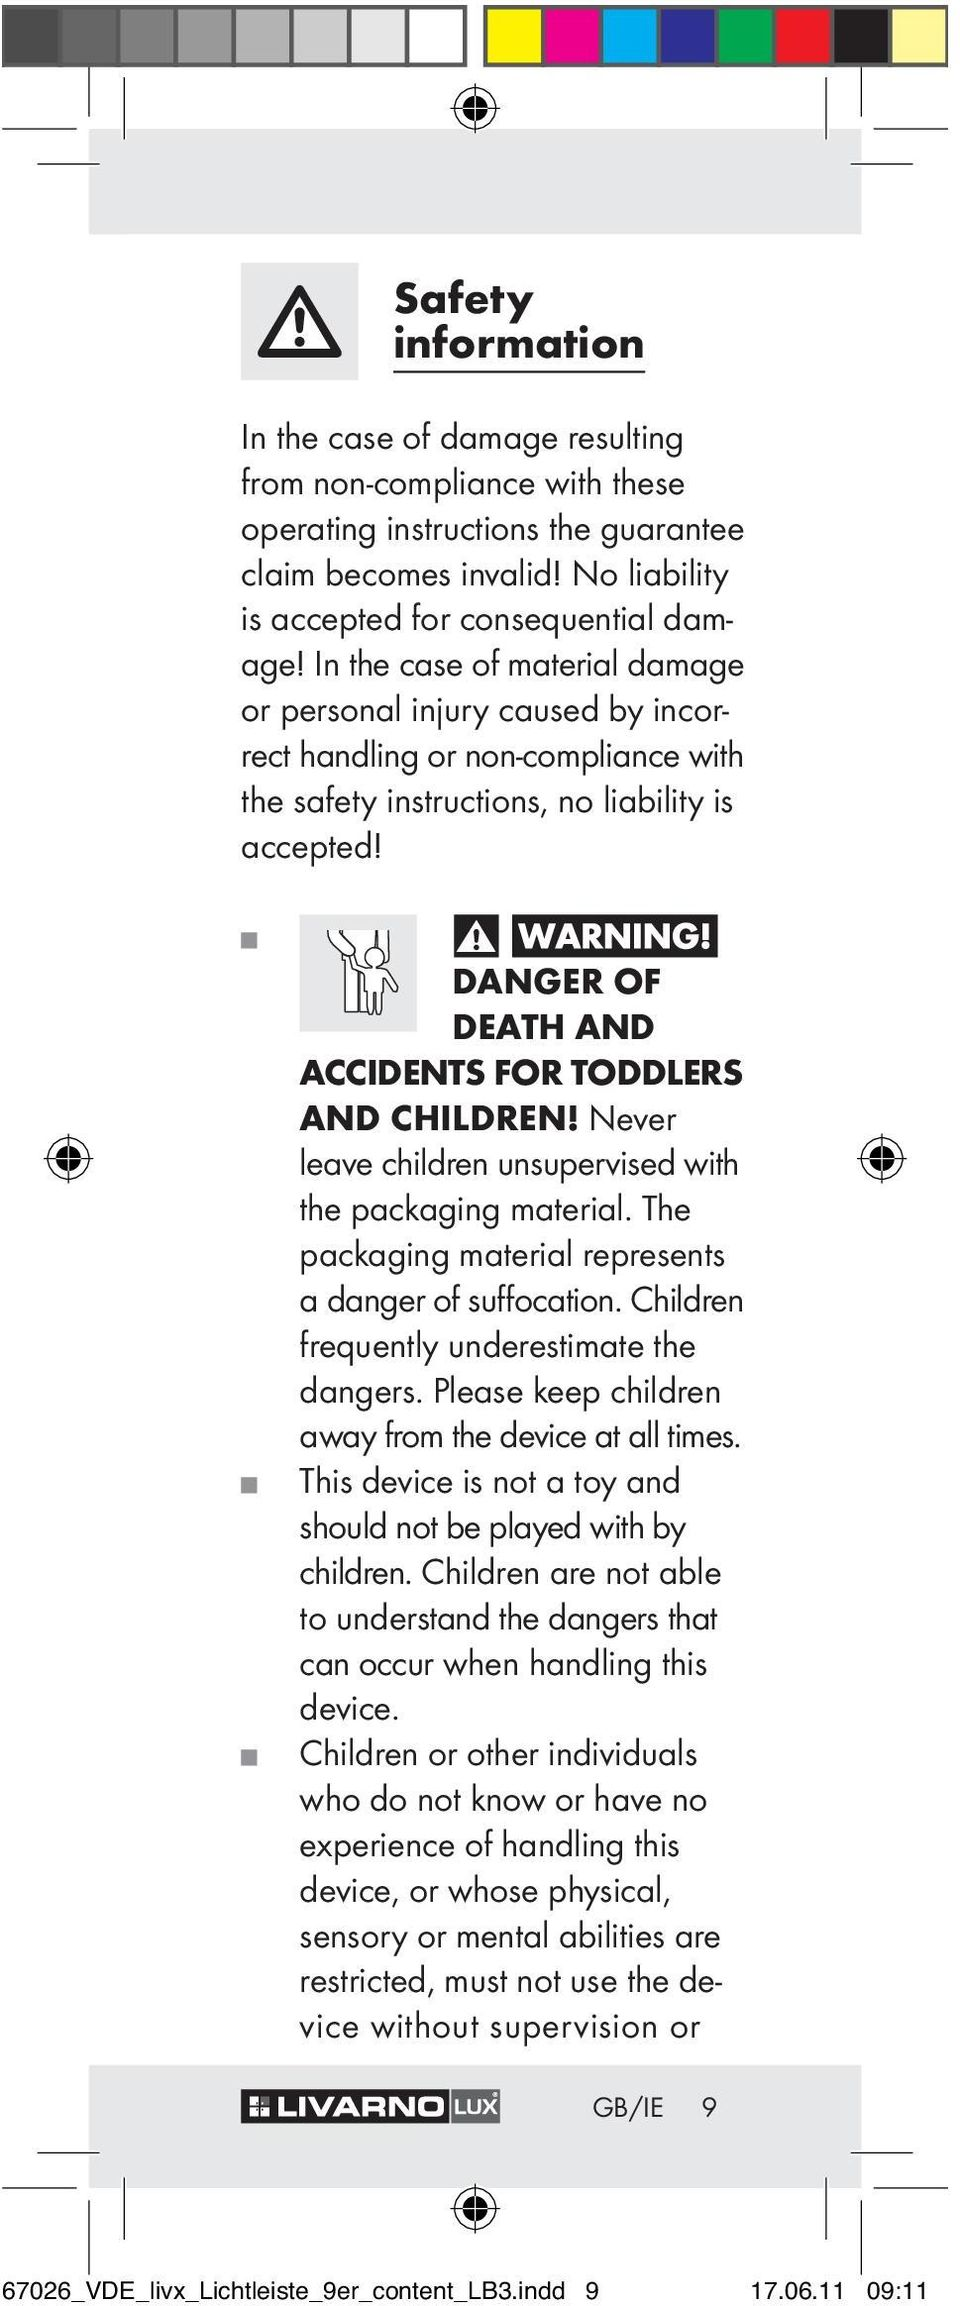 DANGER OF DEATH AND ACCIDENTS FOR TODDLERS AND CHILDREN! Never leave children unsupervised with the packaging material. The packaging material represents a danger of suffocation.